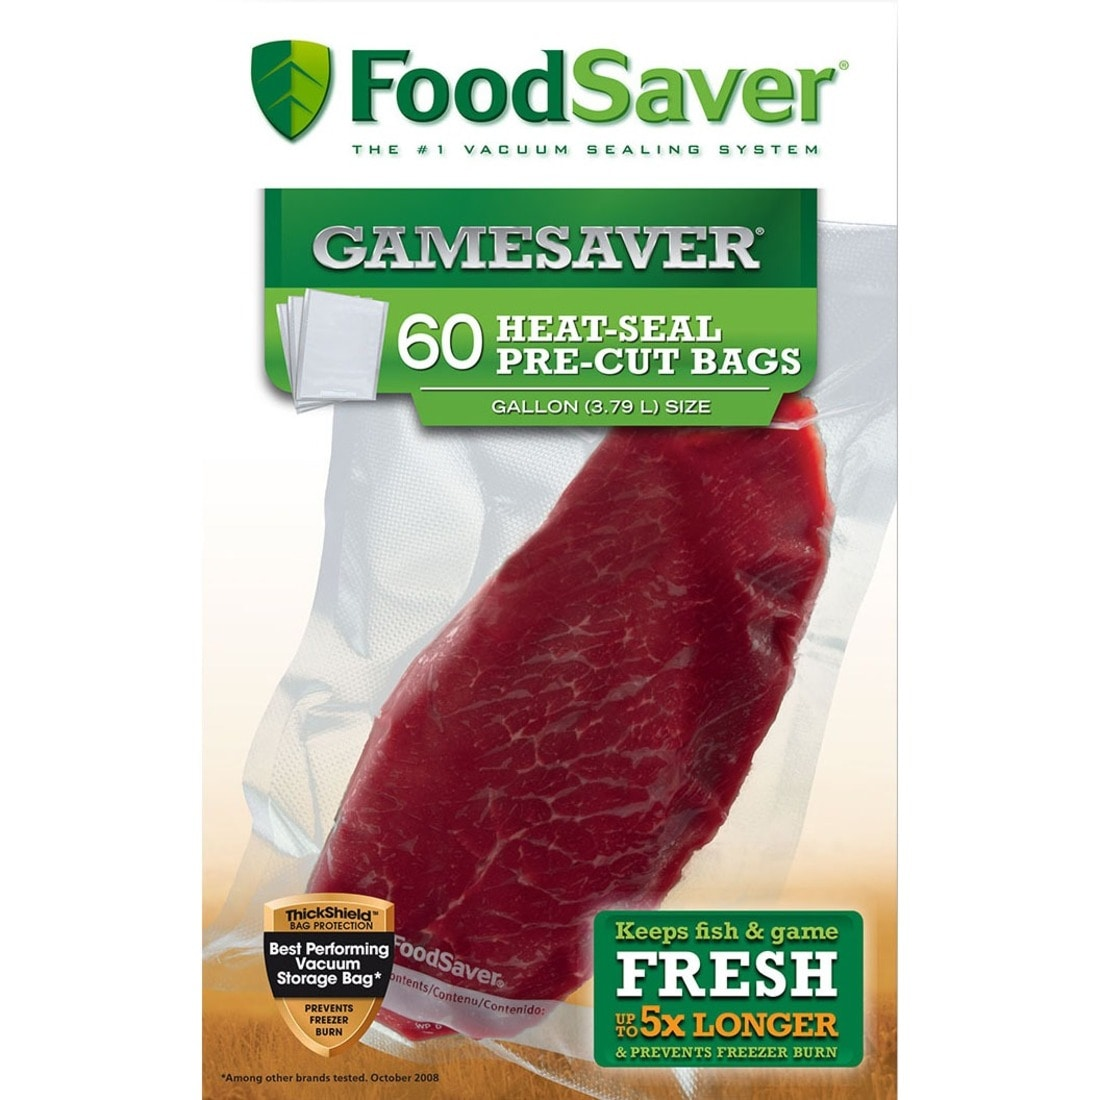 "FoodSaver GameSaver 11""x14"" Gallon Vacuum-Seal Bags, 60 Count"